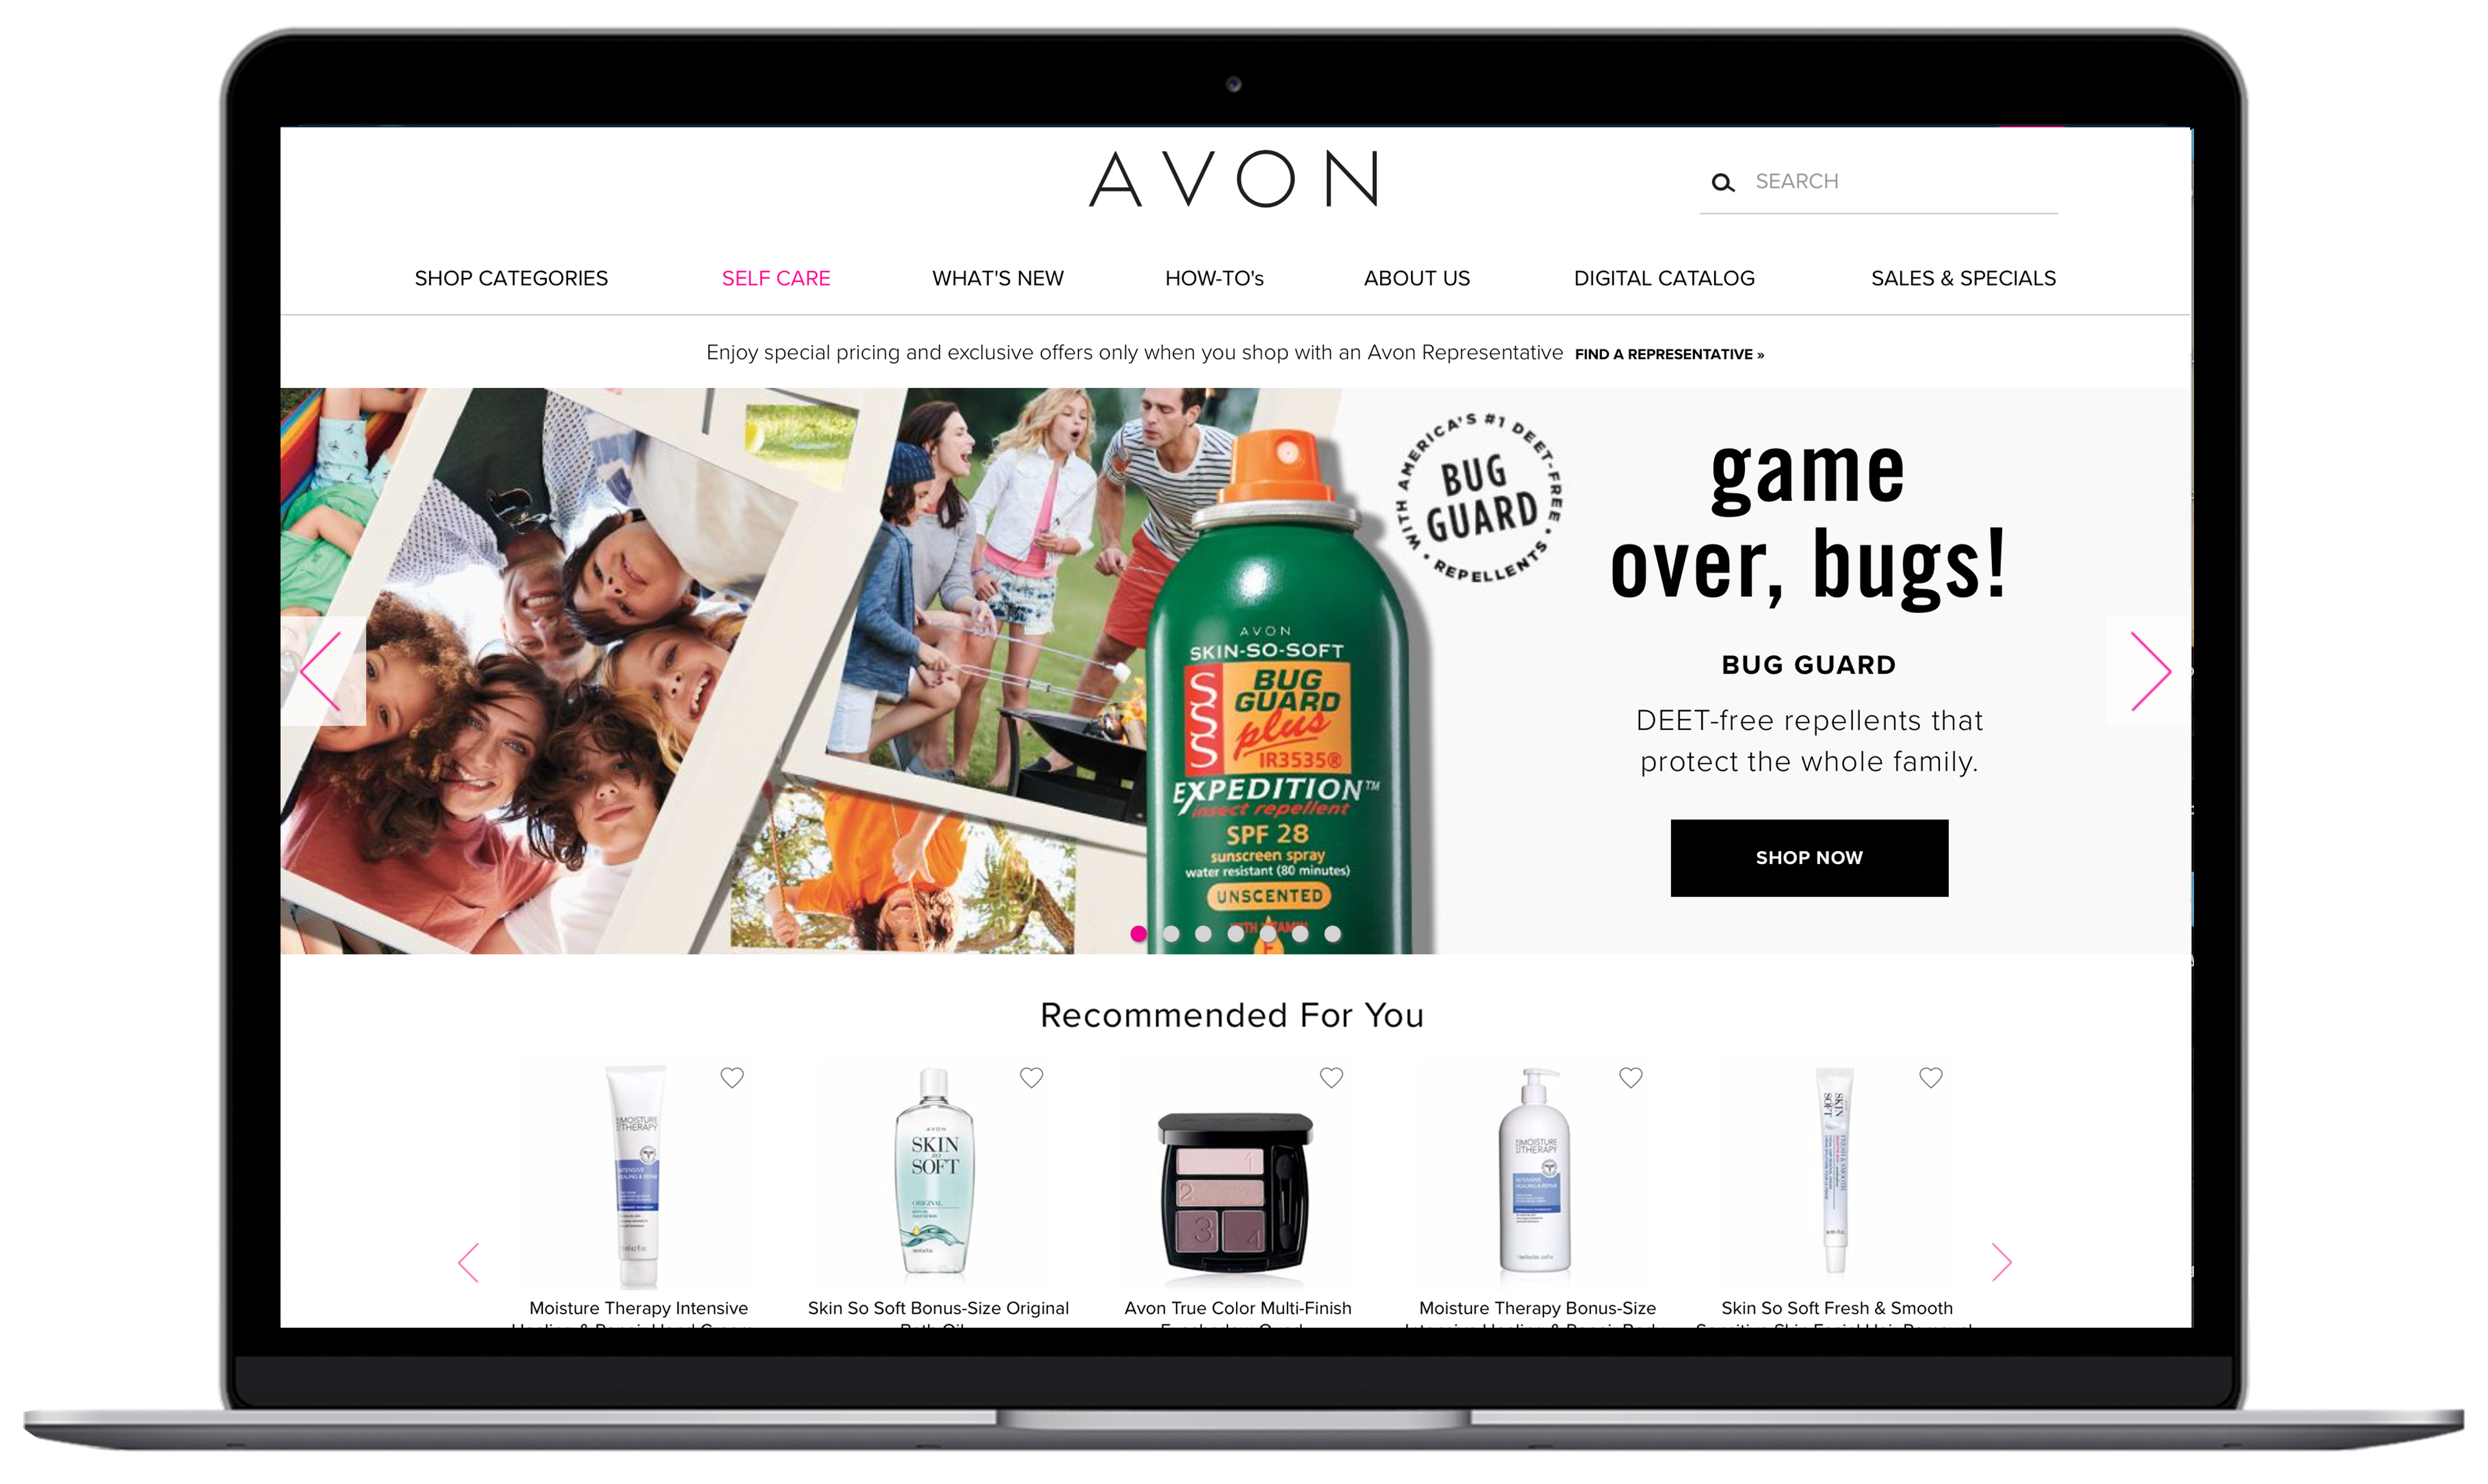 Avon-category-pages